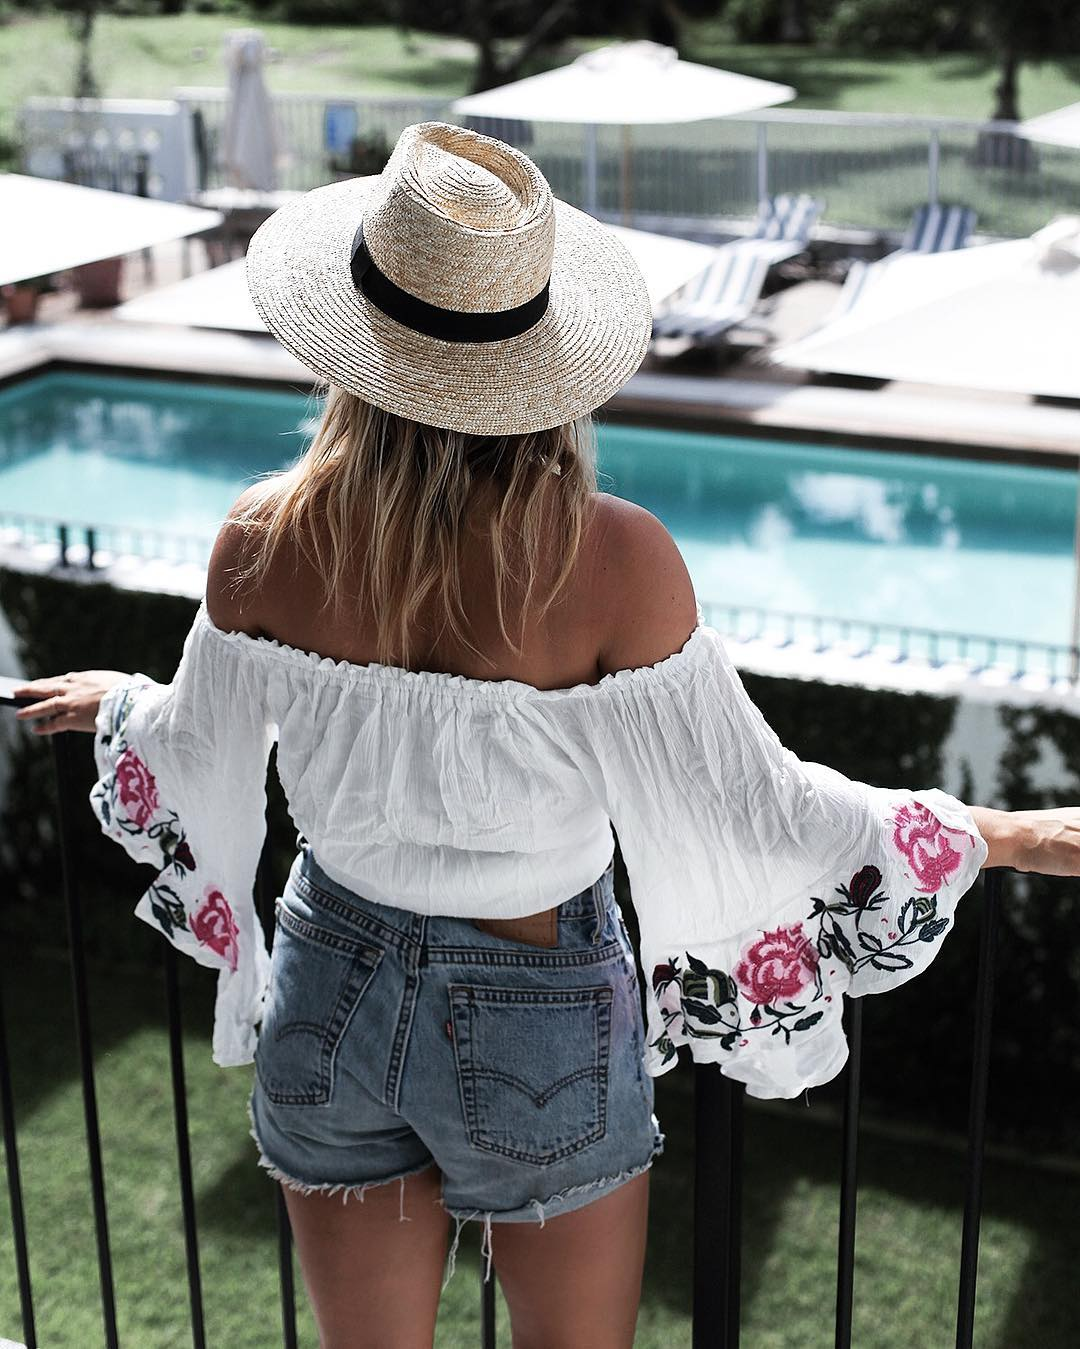 36 Cute Outfit Ideas for Summer 2019 - Summer Outfit ...